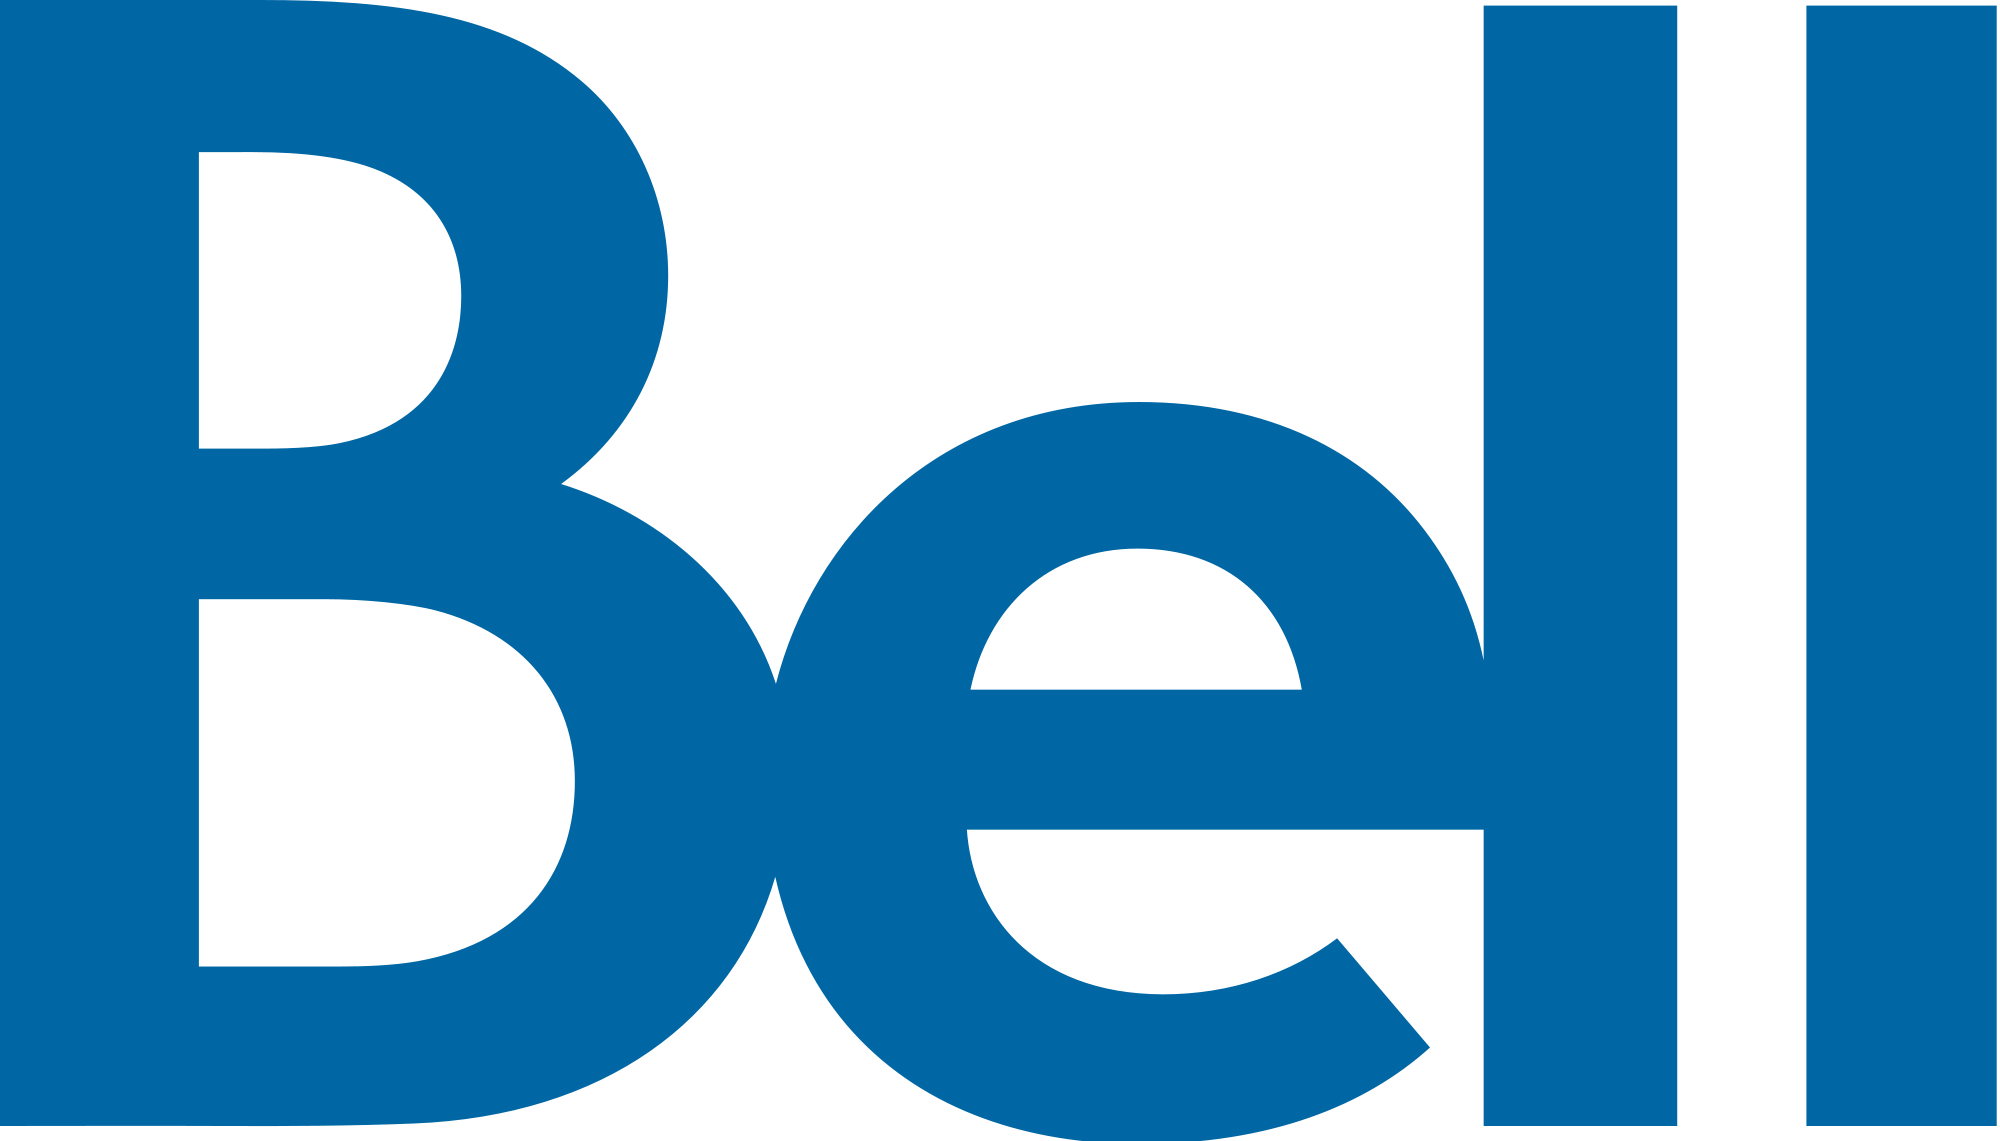 Bell Logo Wallpaper